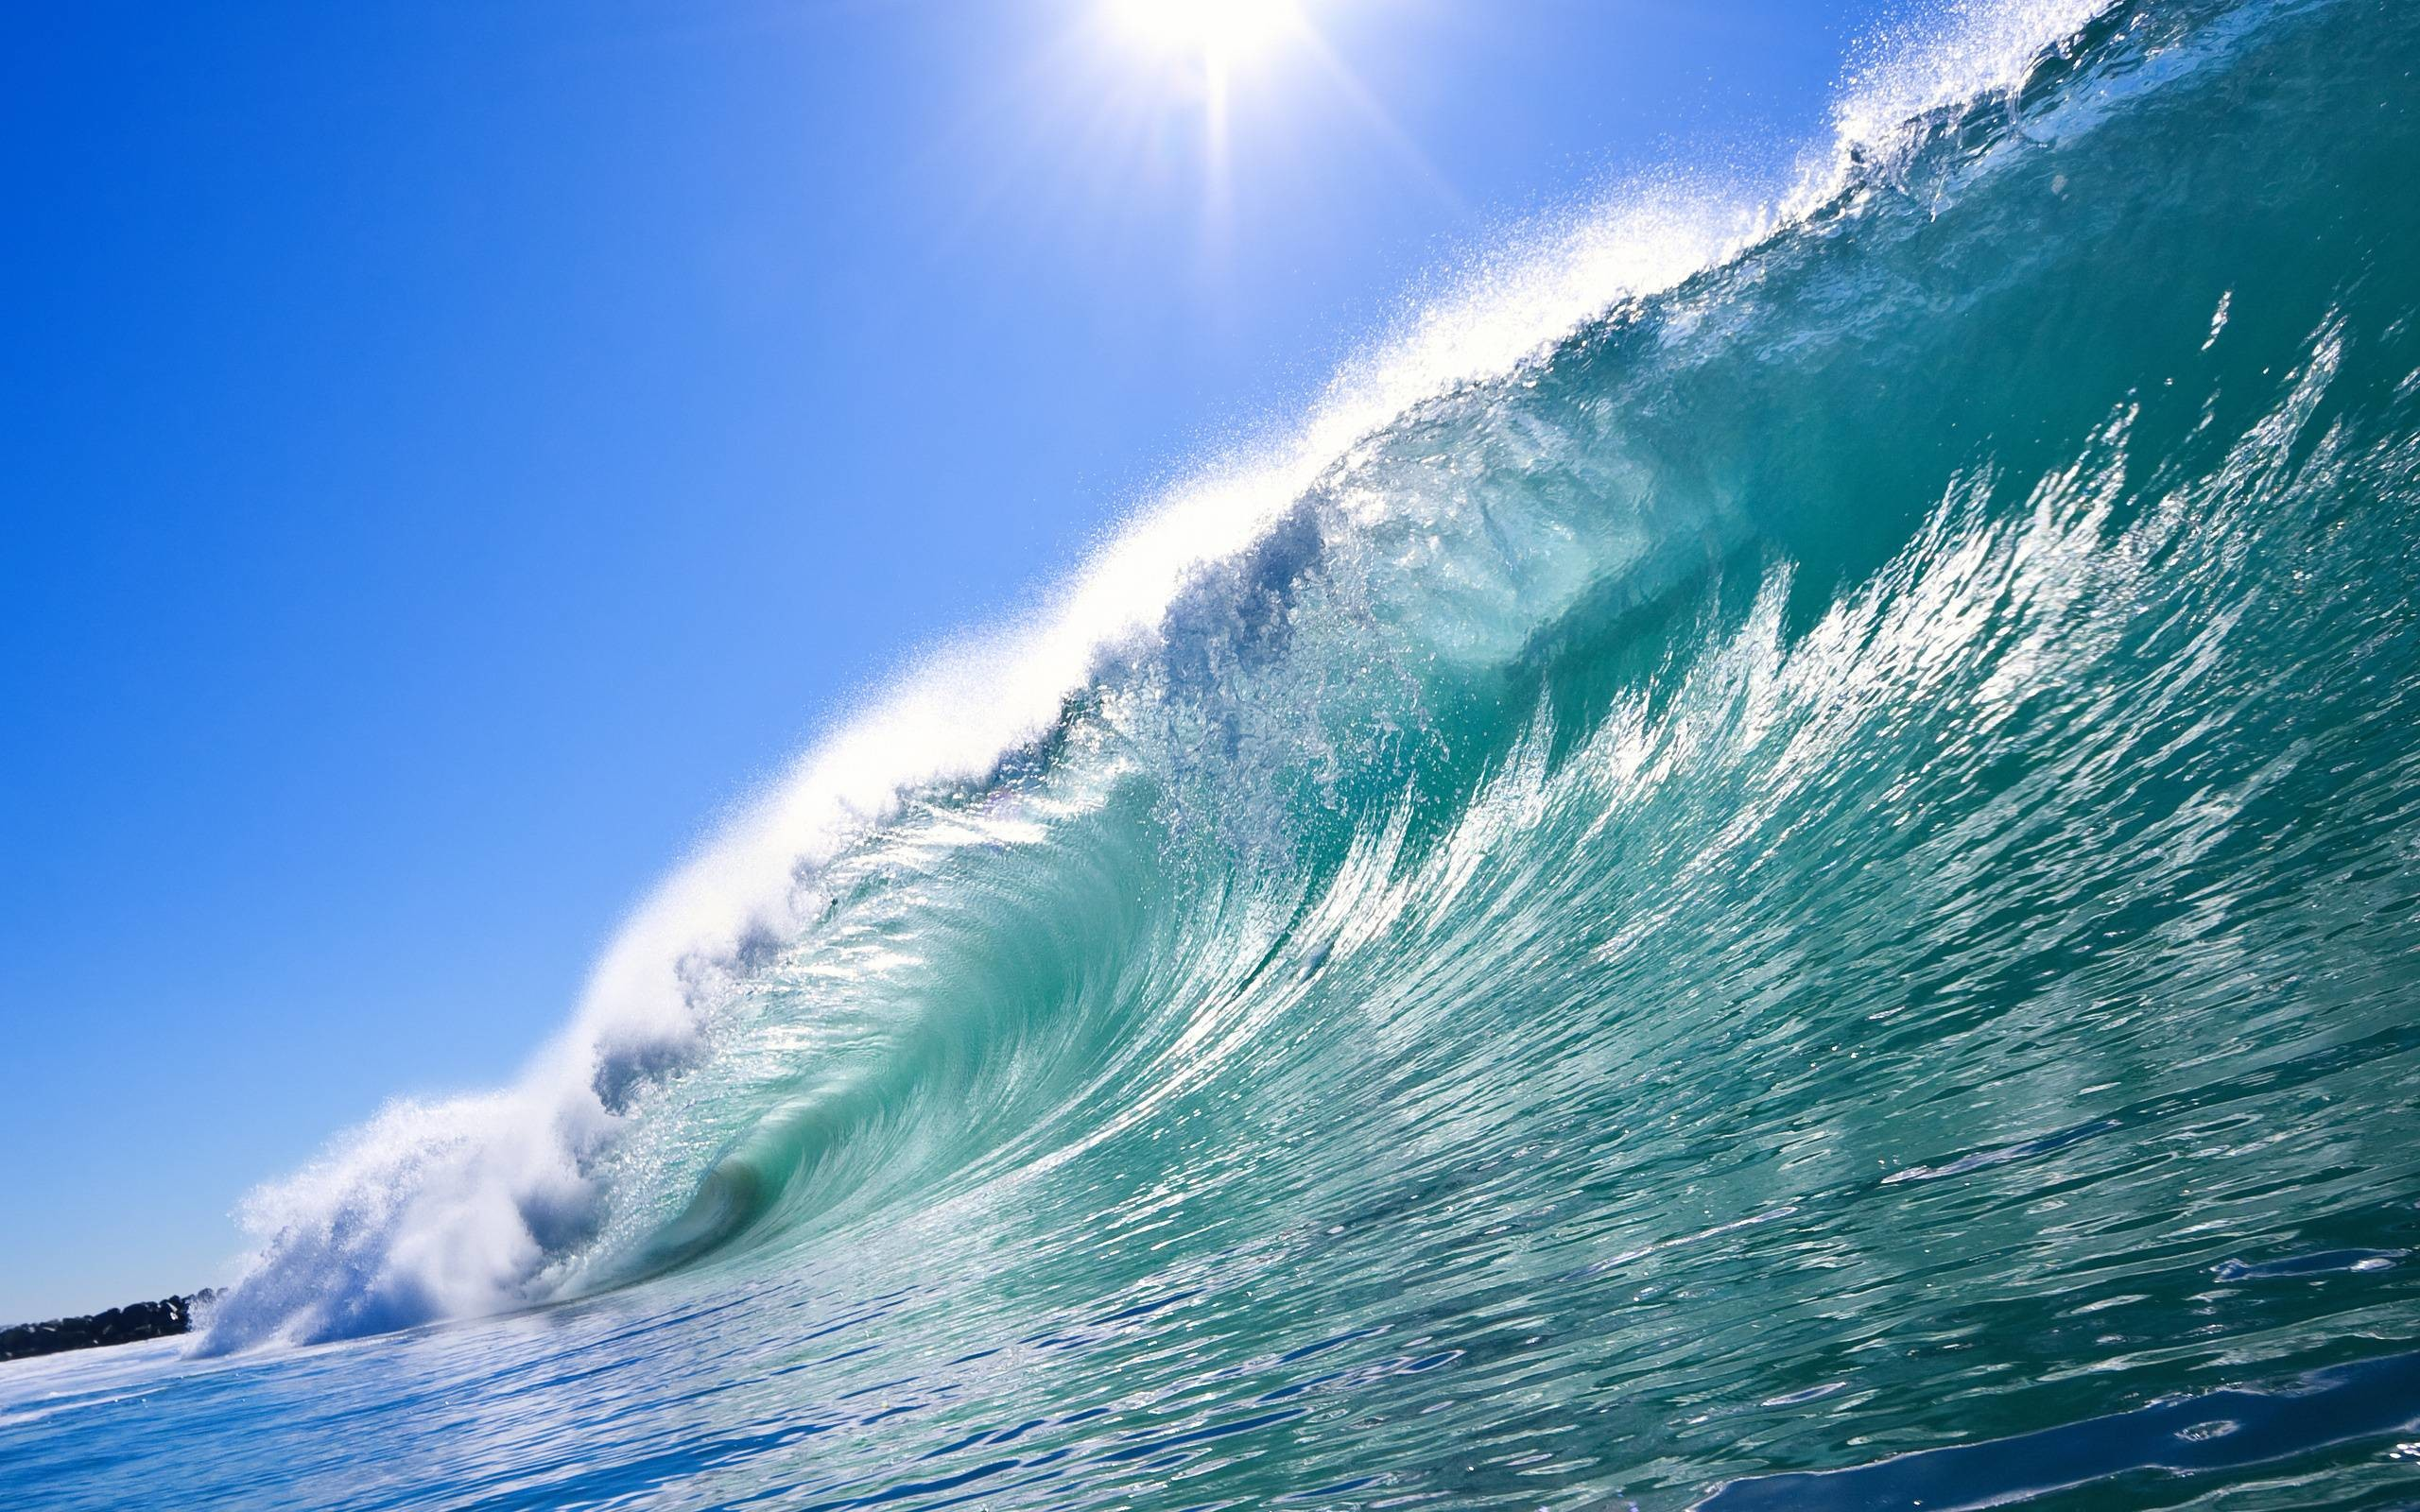 2560x1600 Ocean Waves Wallpapers and Background